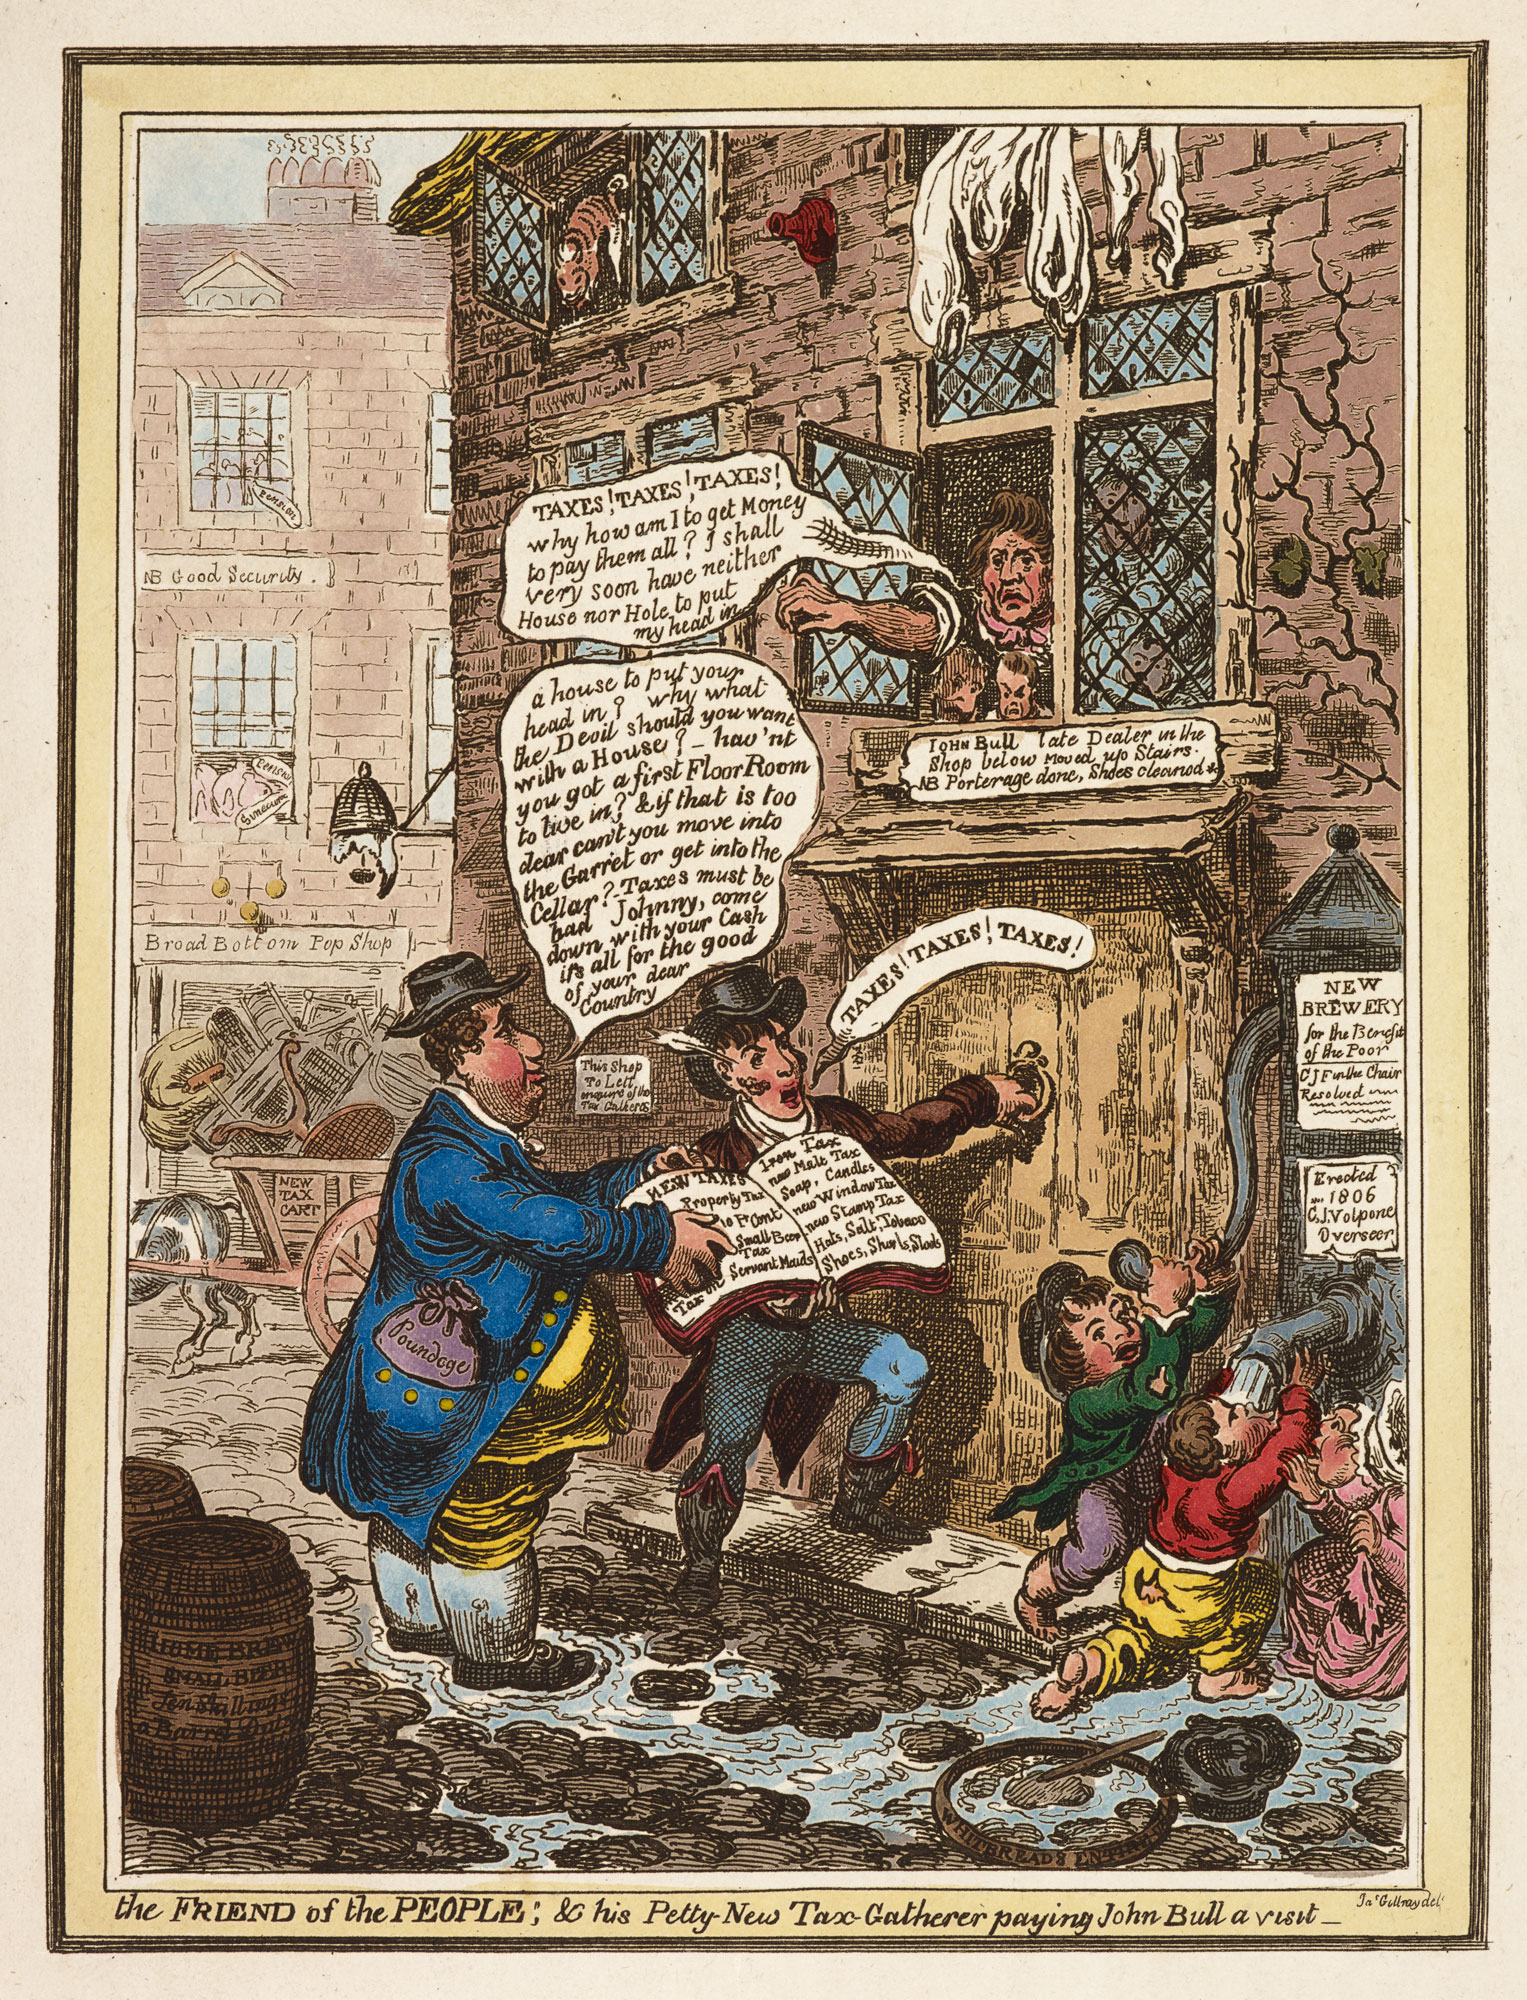 The Friend of the People; & his Petty New Tax Gatherer paying John Bull a visit' by Gillray [page: facing p. 99]